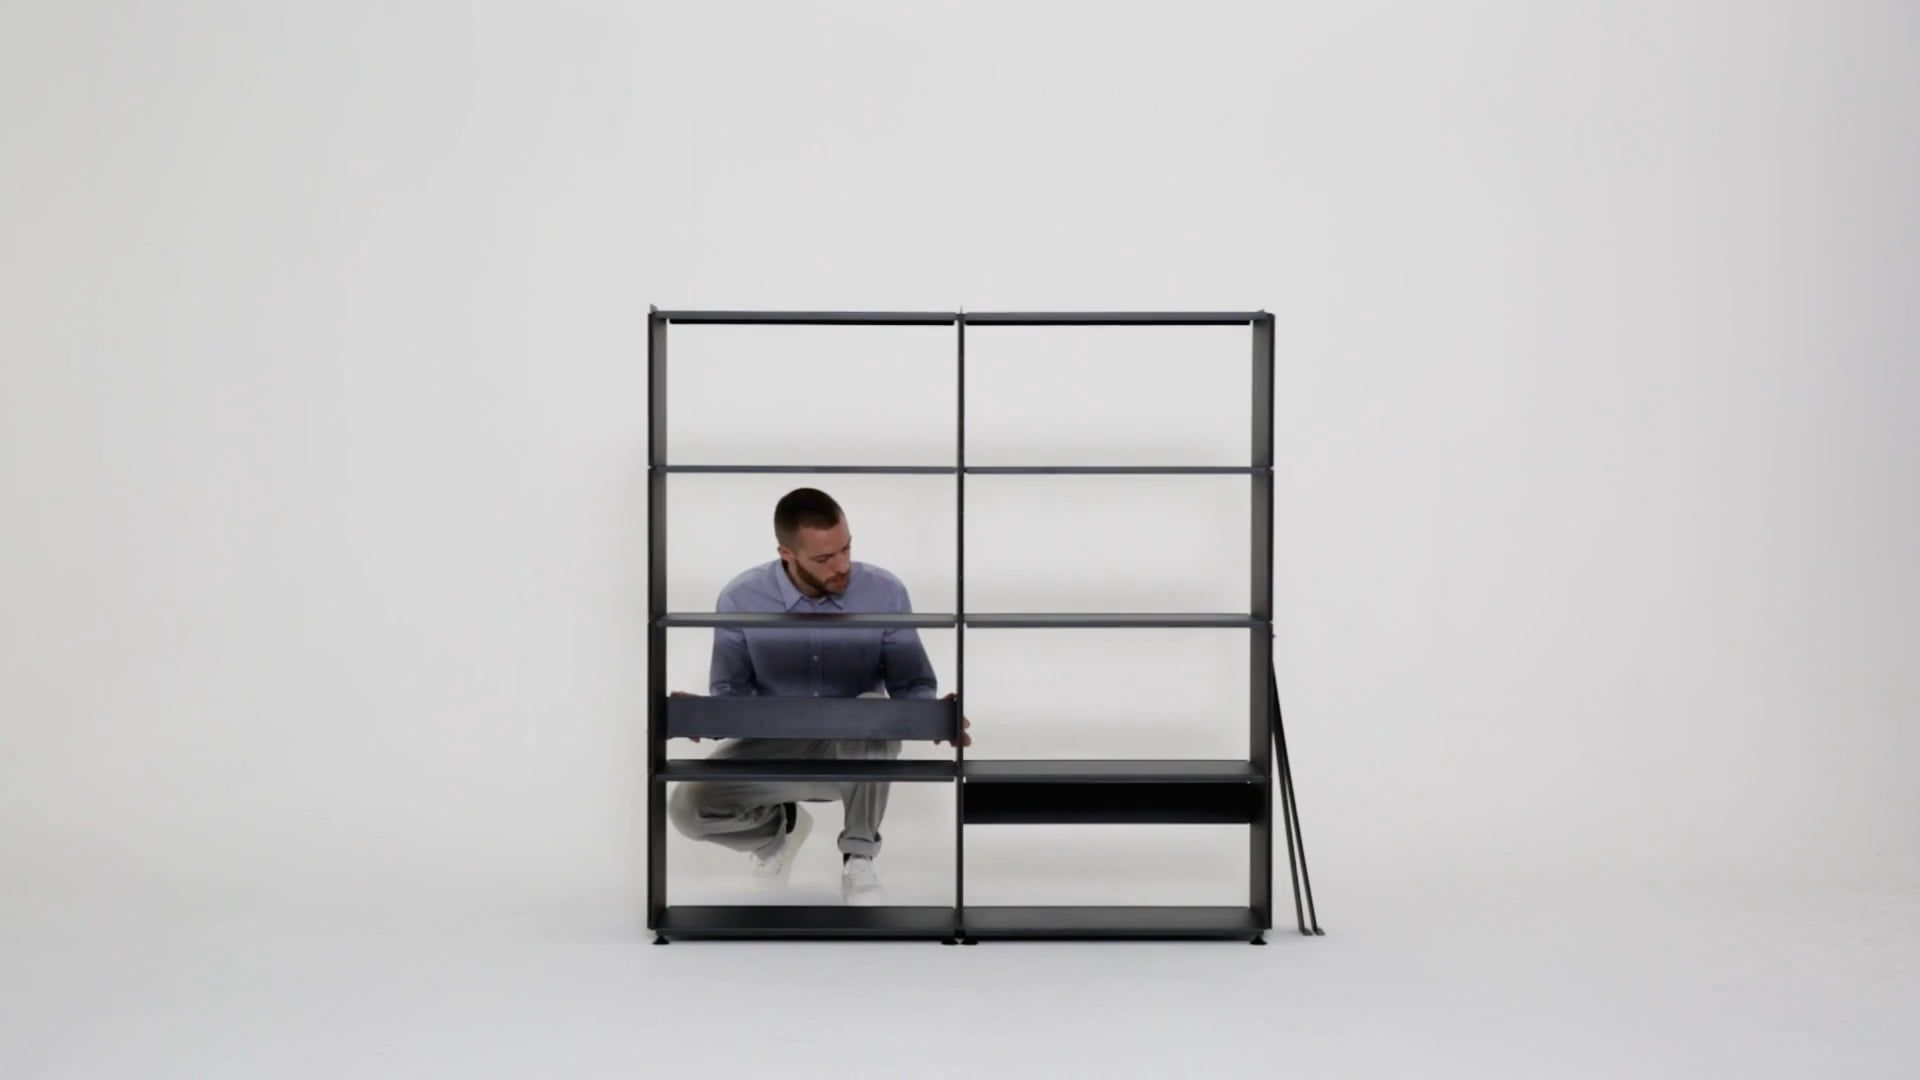 Wandregalsystem Design Plusminus Shelving System Designed By Daniel Lorch For Faust